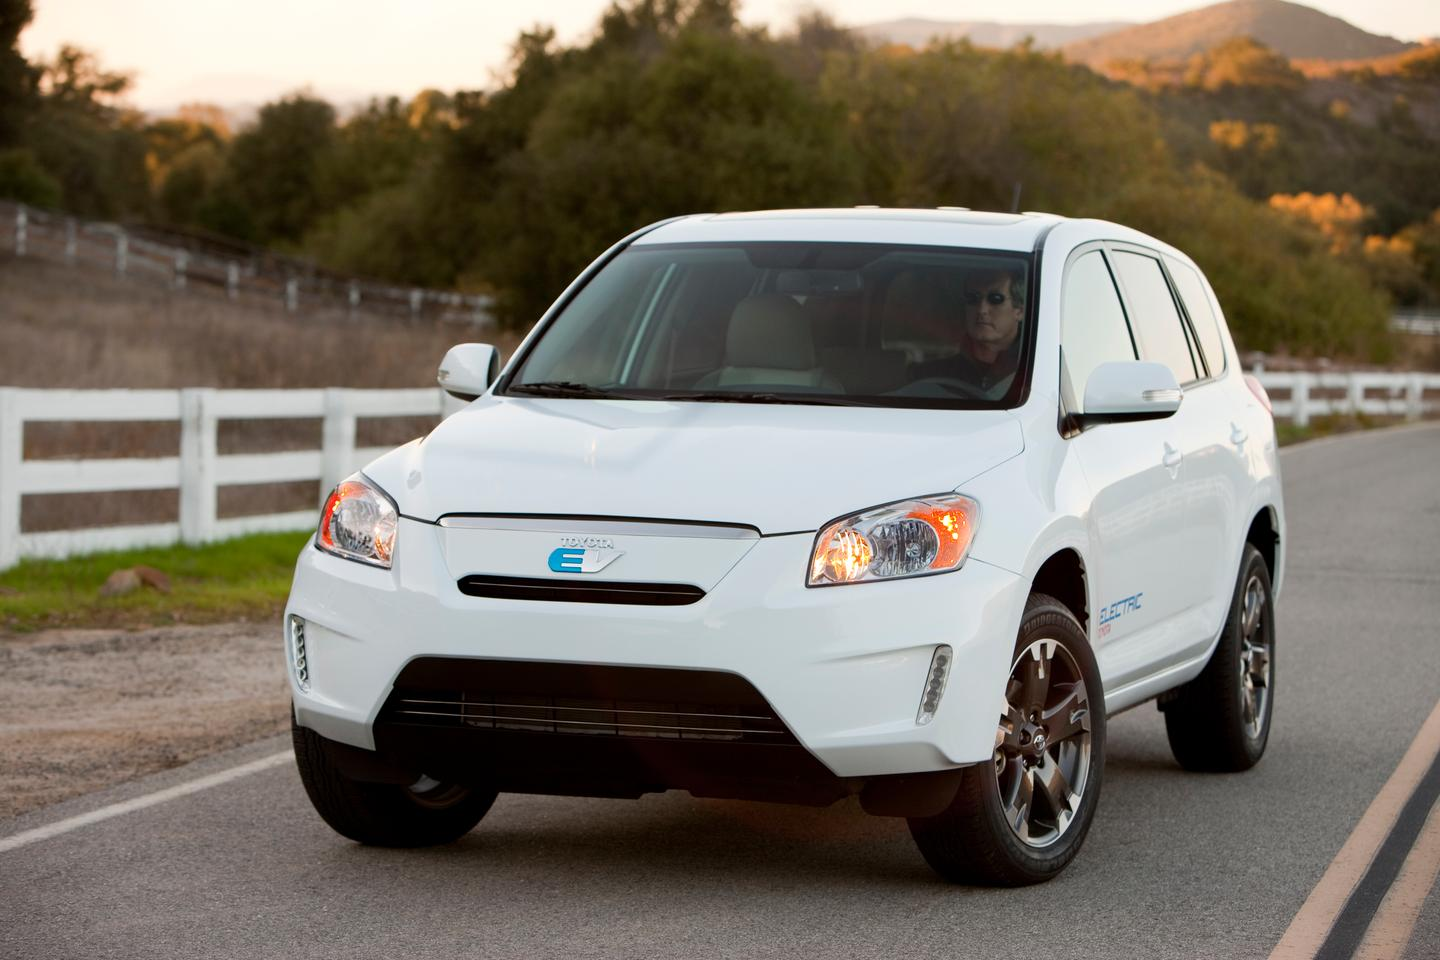 Toyota/Tesla collaboration results in new RAV4 EV technology demonstrator